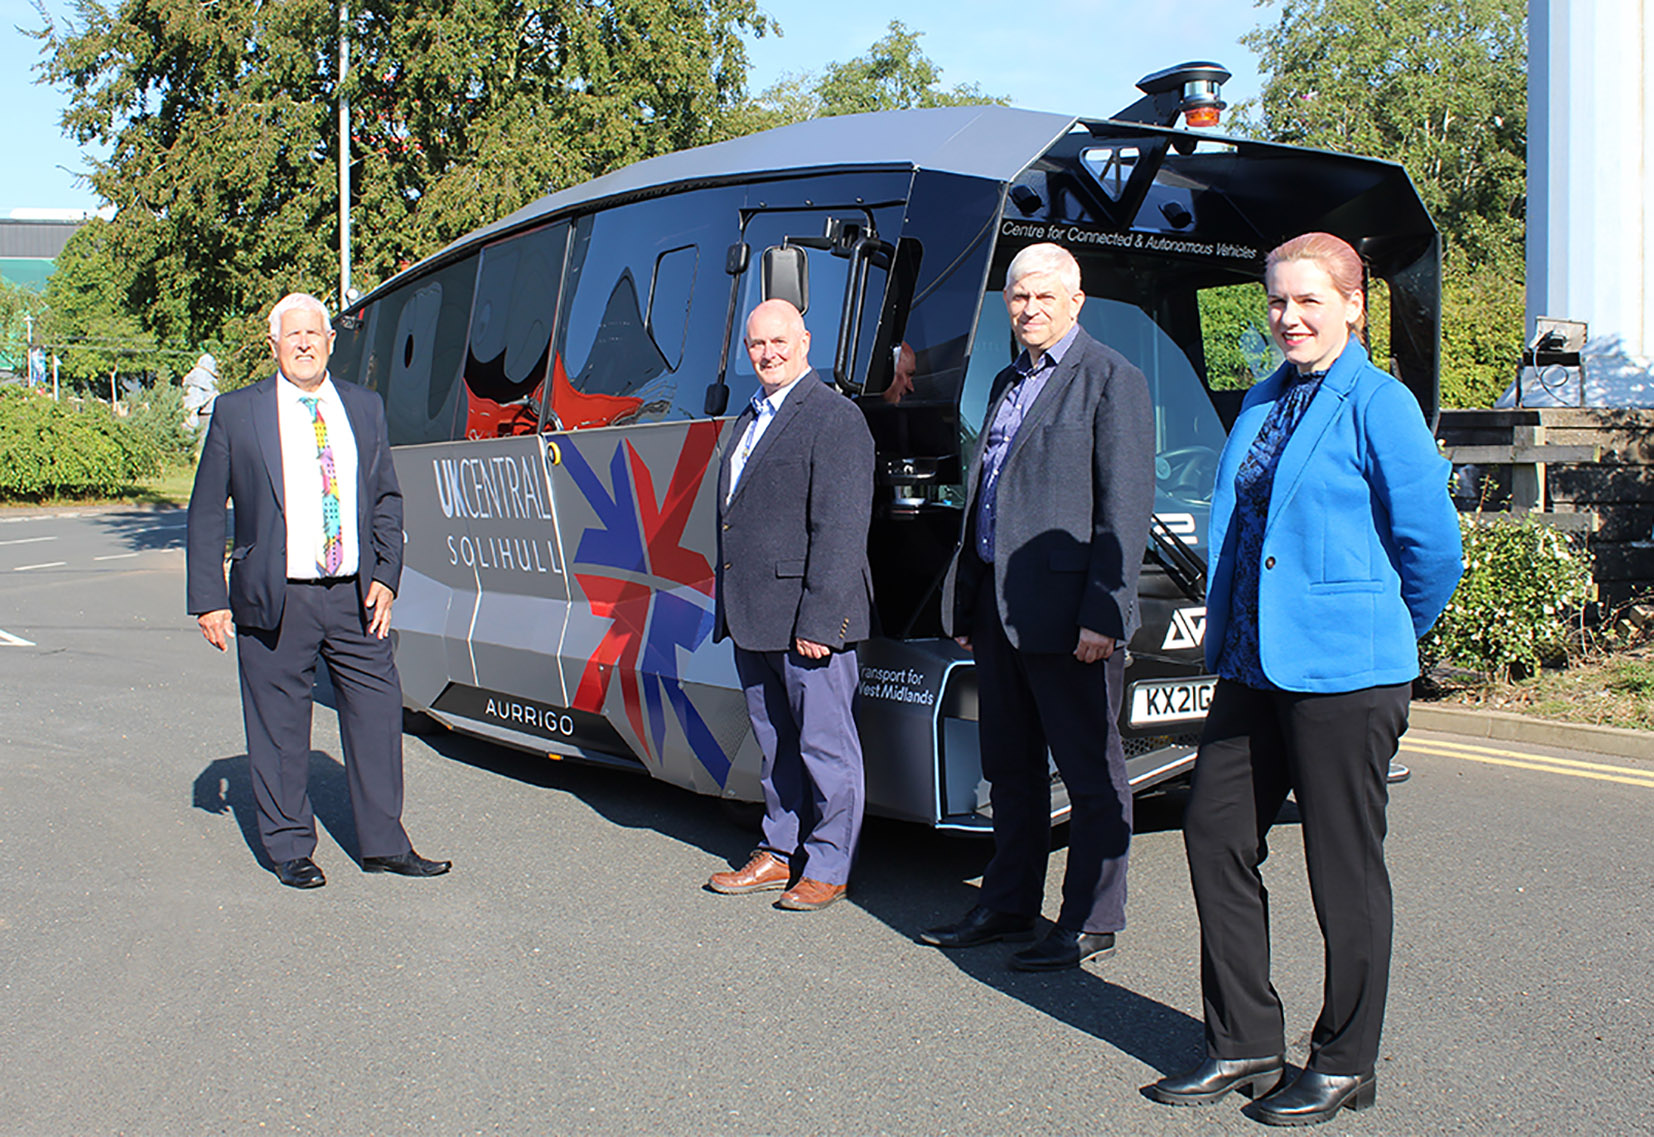 (L-R): Councillor Ken Hawkins (Cabinet Portfolio Holder for Environment & Infrastructure at Solihull Council), Gary Masters (NEC Campus General Manager), Chris Lane (Head of Transport Innovation at TfWM) and Ewa Truchanowicz (GBSLEP Board Director). Image courtesy of Aurrigo.